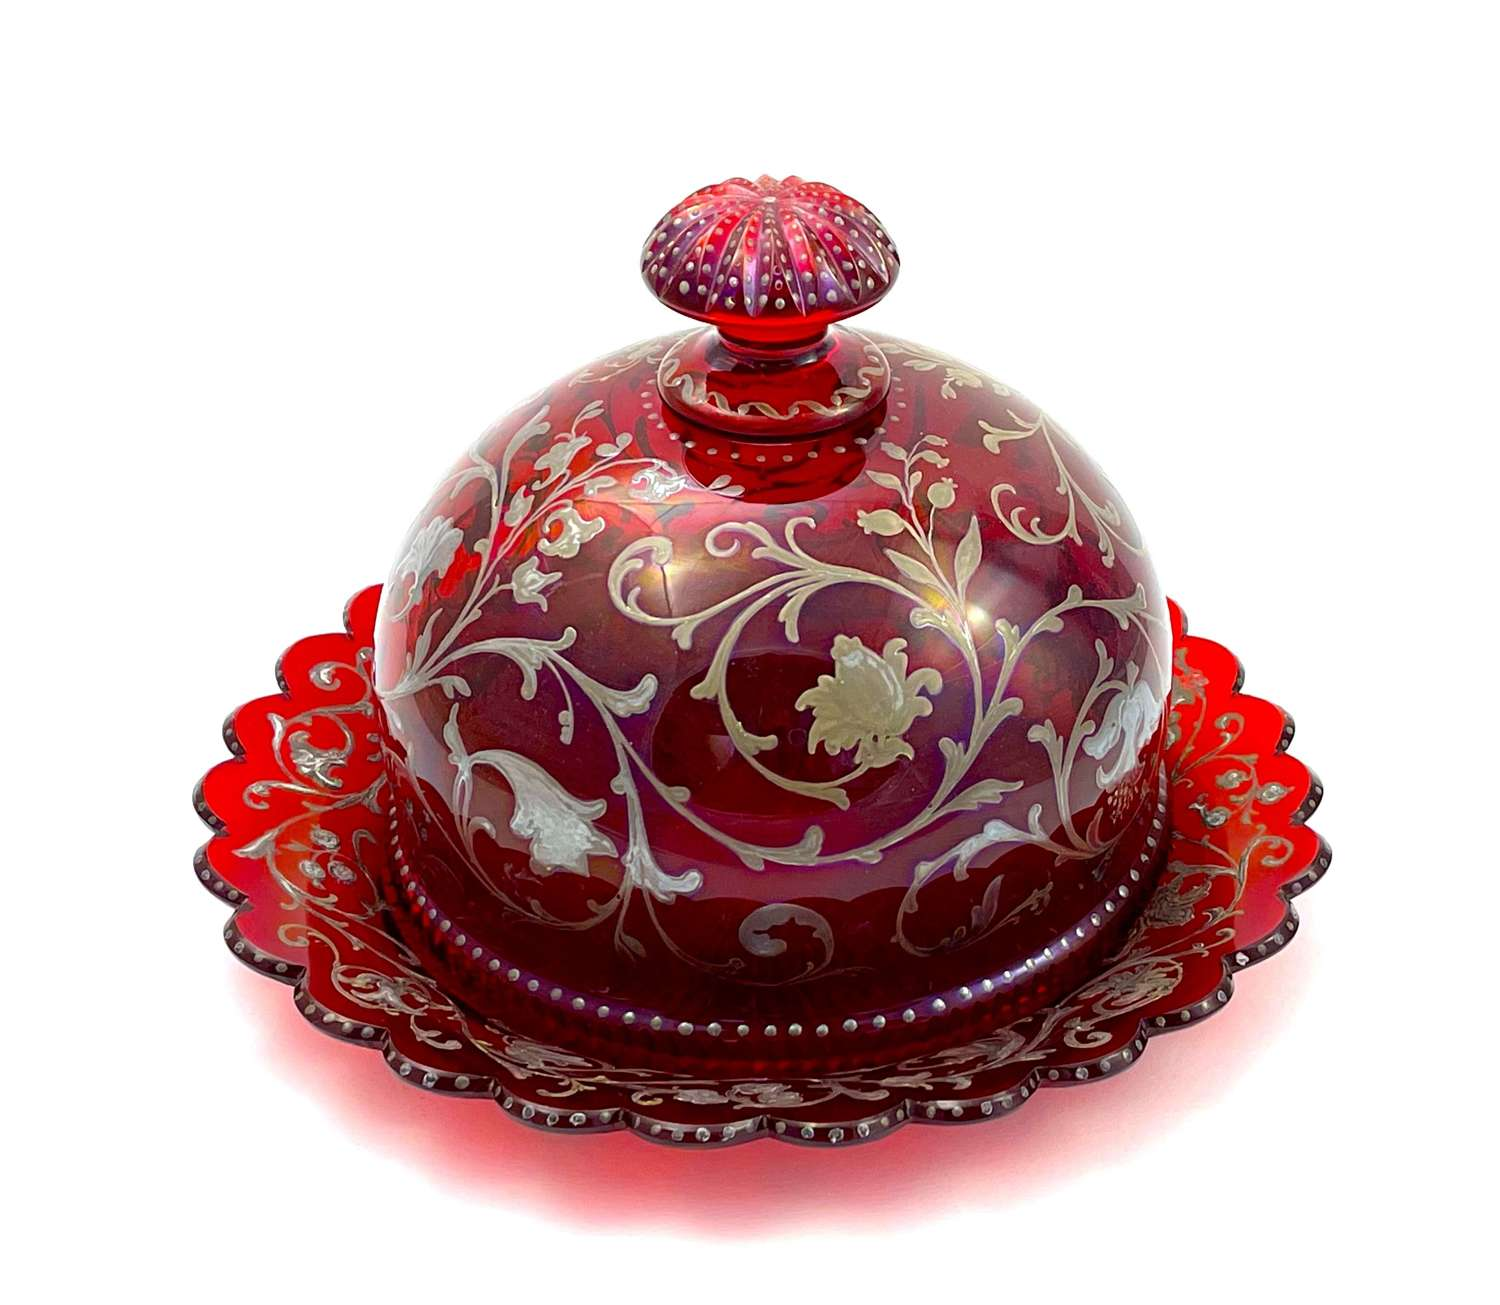 Antique Bohemian Ruby Red Dish with Silver Enamel Decoration